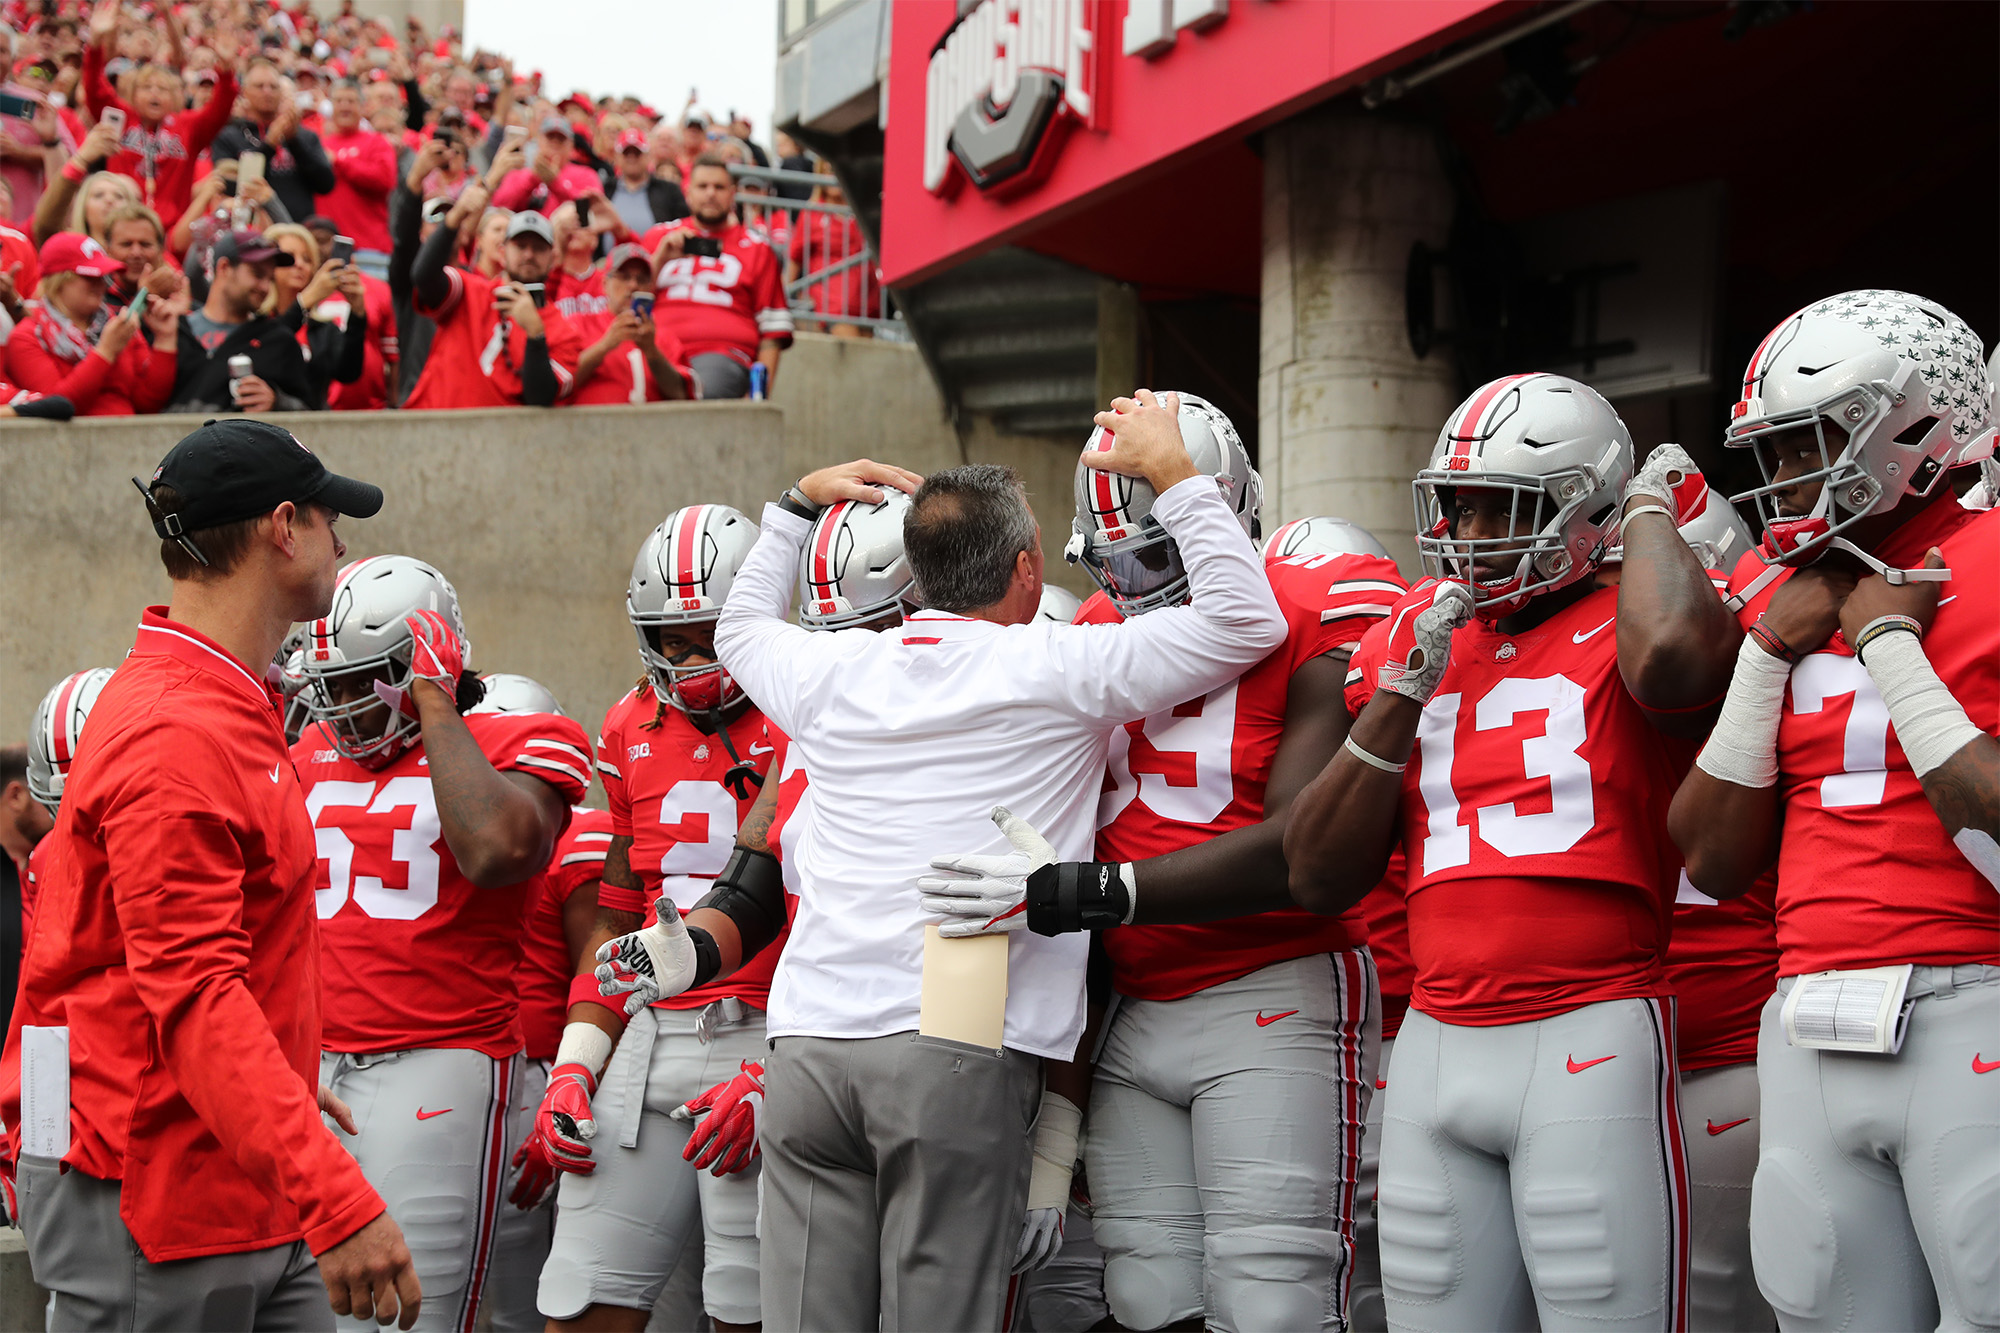 Updated Polls Set Stage For Top-10 Tilt Between Ohio State, Penn State